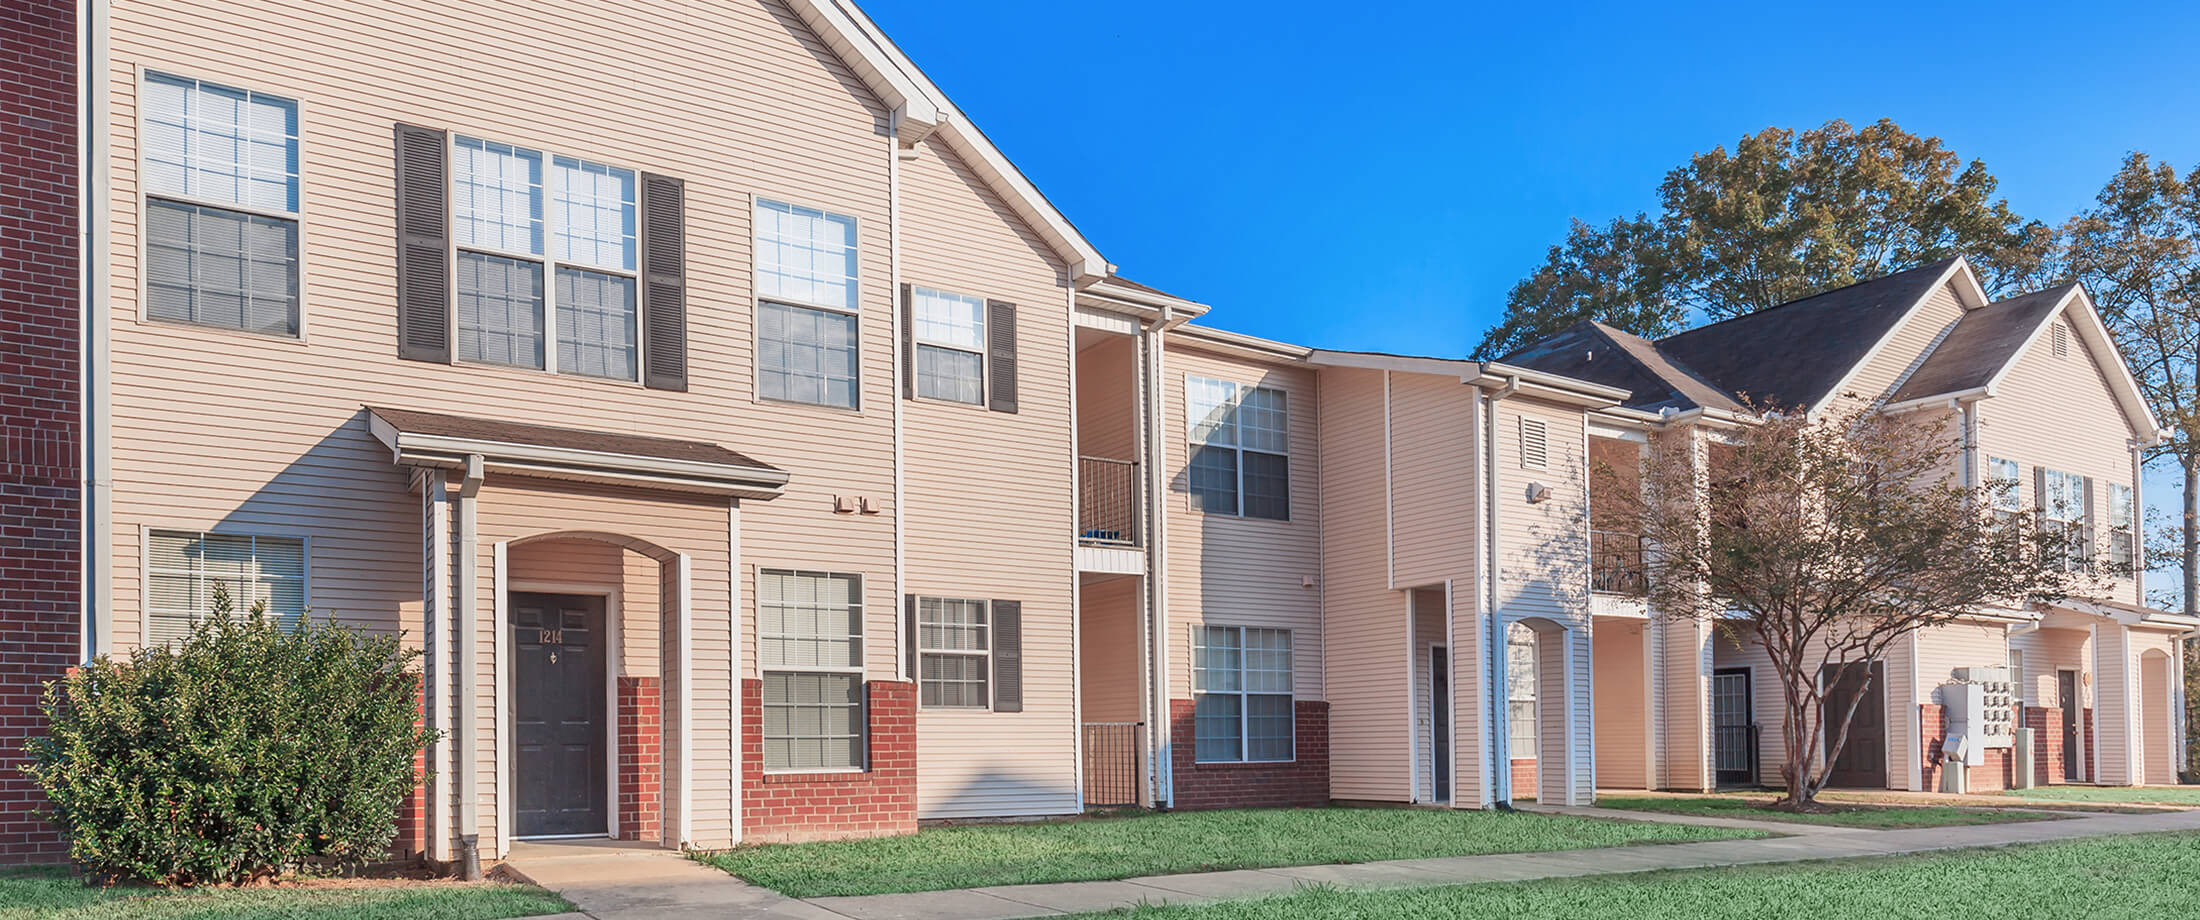 One bedroom apartments in starkville ms small wooden for 1 bedroom apartments in starkville ms